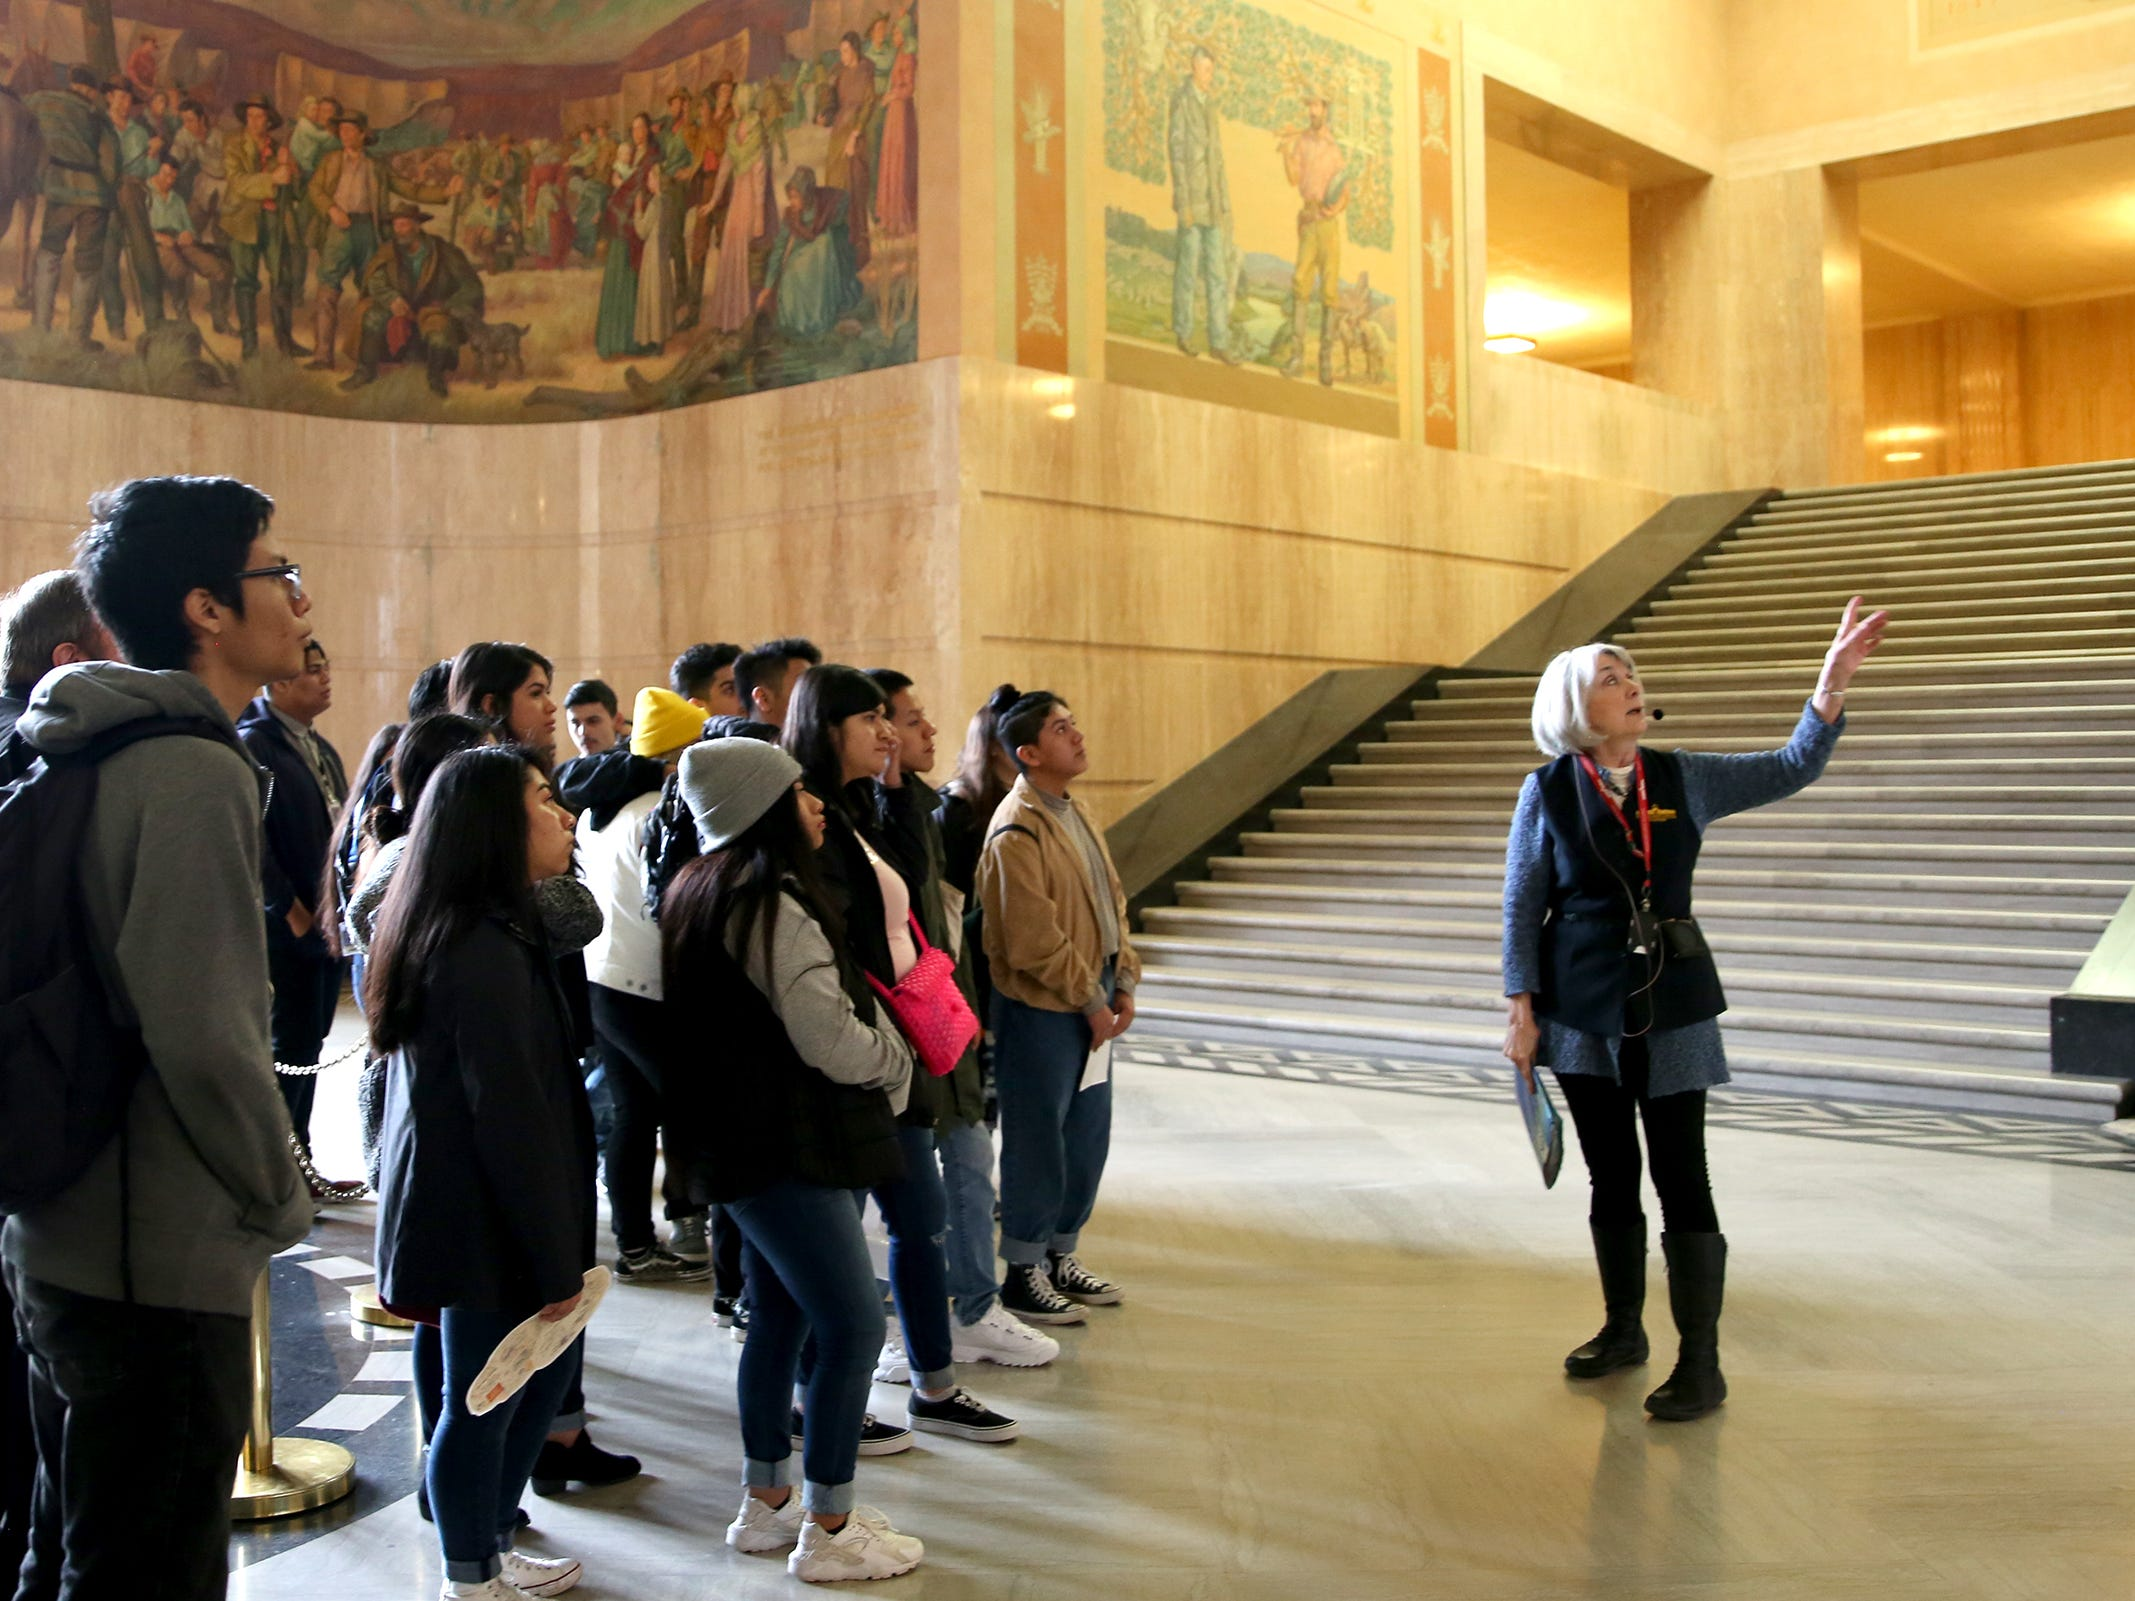 Woodburn High School students get a tour of the Oregon State Capitol during Career and Technical Education (CTE) day at the Oregon State Capitol in Salem on Friday, Feb. 1, 2019.